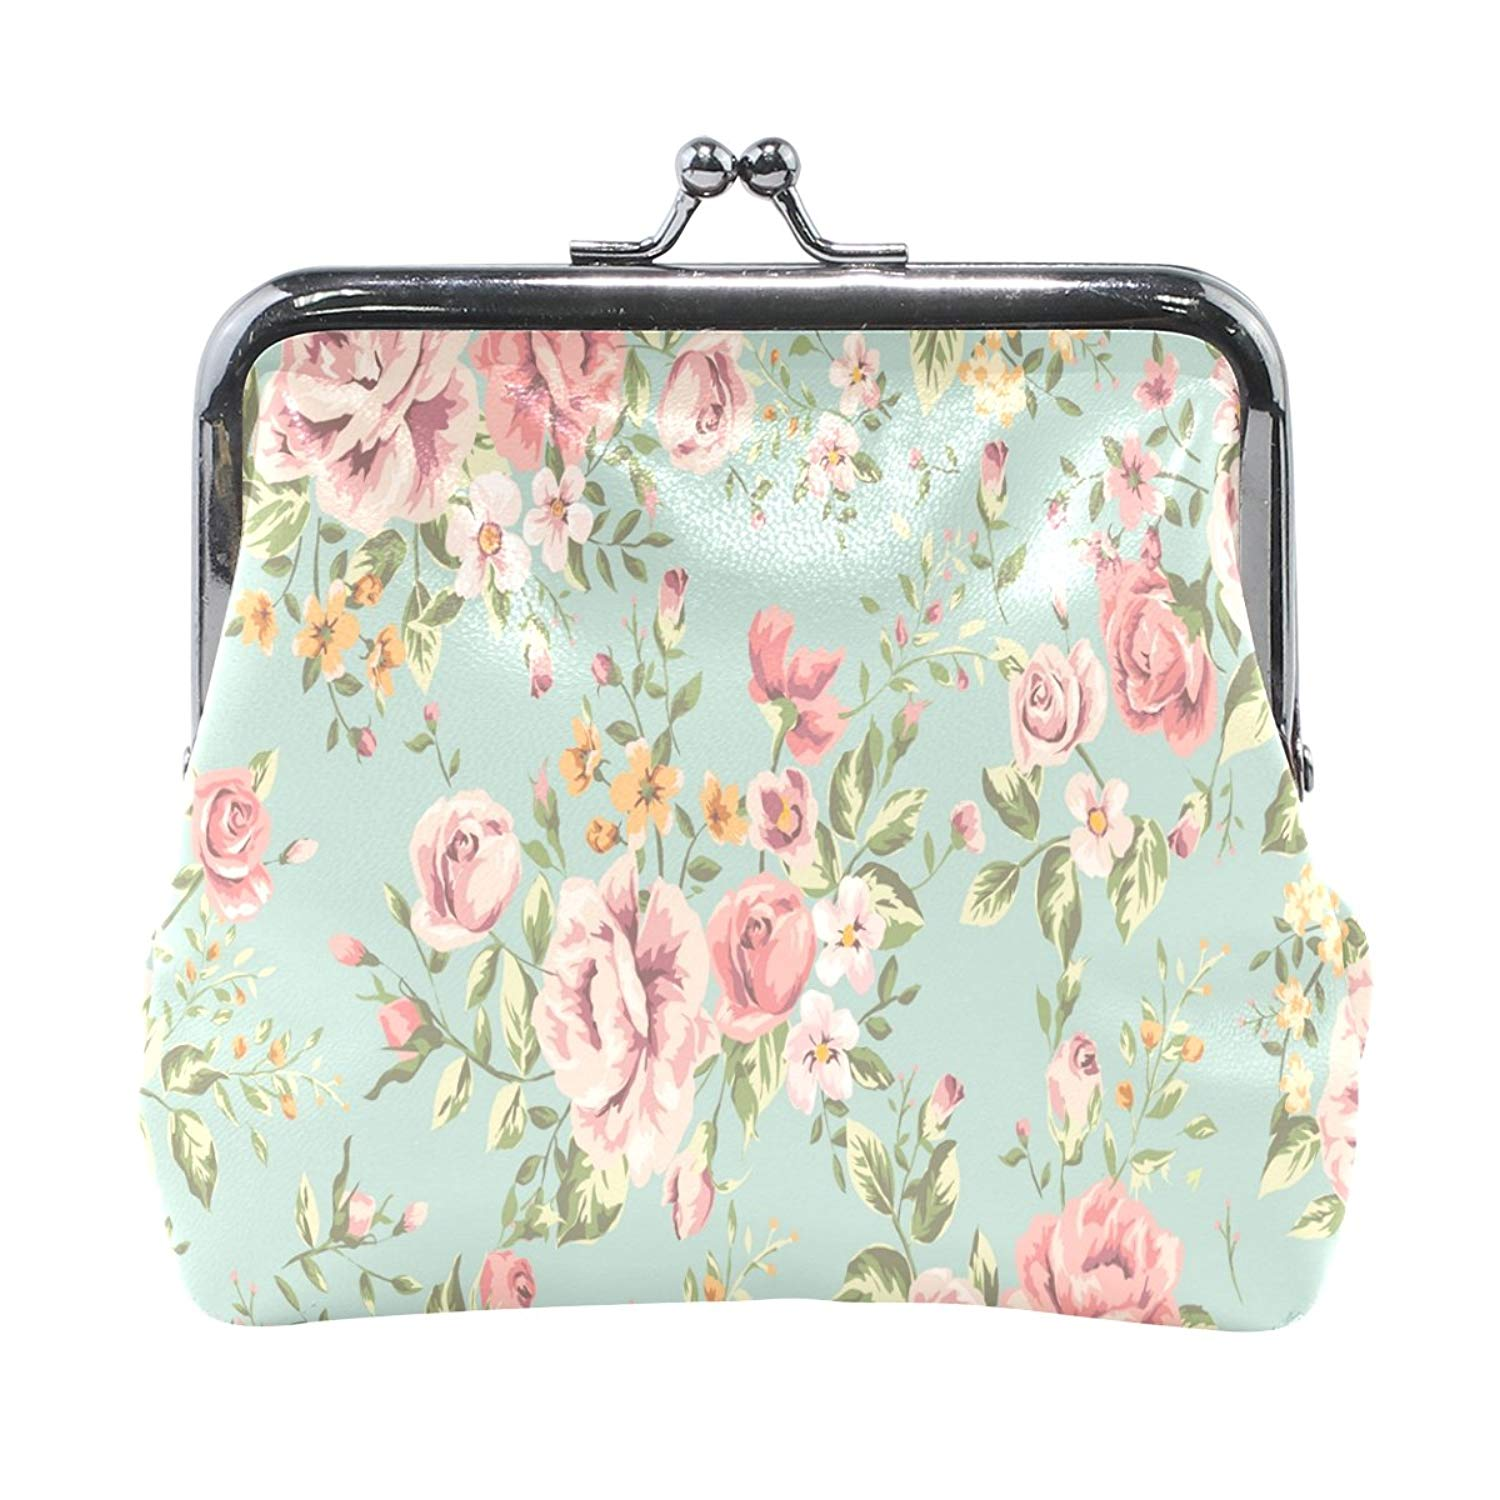 Vintage Flower Pattern High Grade Leather Coin Purse Snap Closure Clutch Coin Wallet